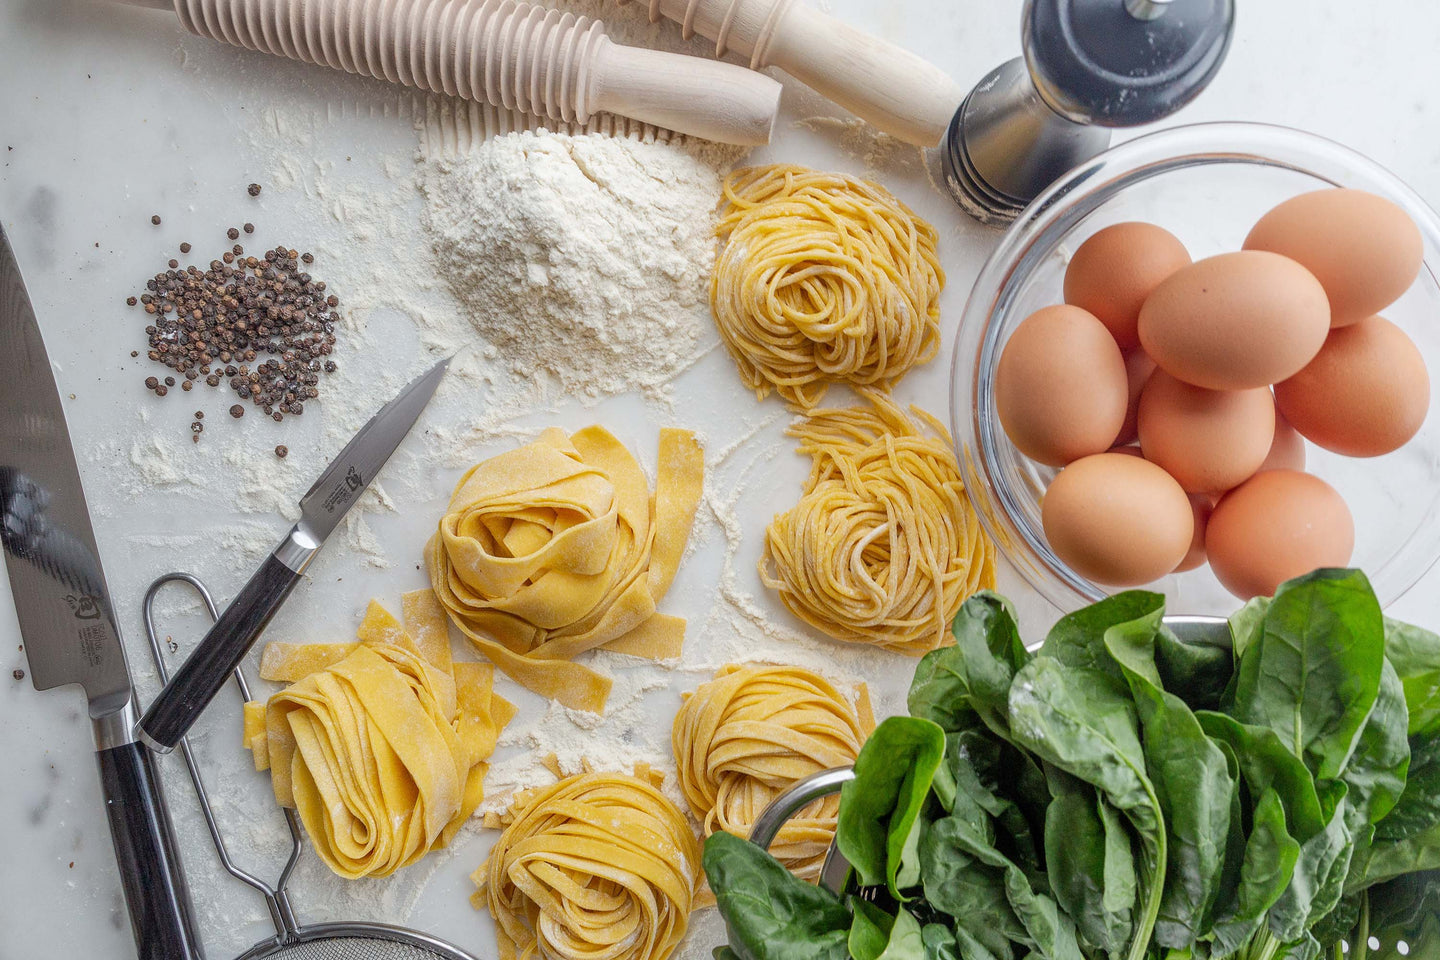 Delicious, fresh pasta at home